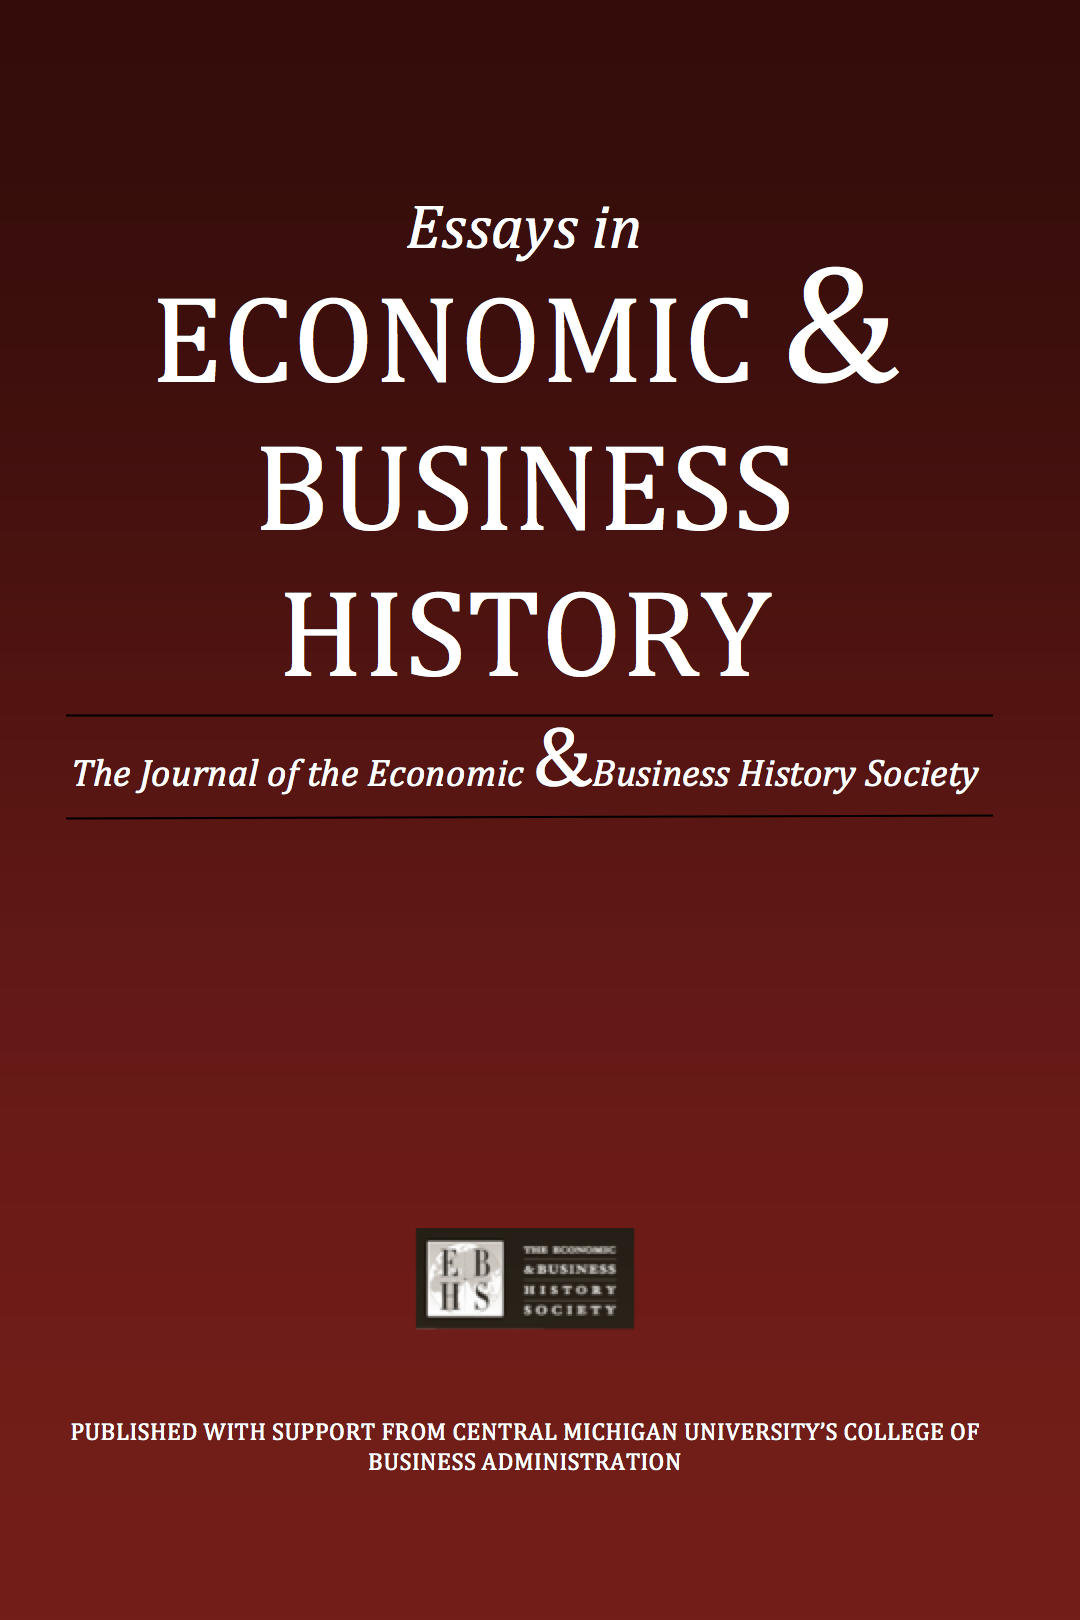 essays business economic history Download and read essays in economic and business history essays in economic and business history new updated the essays in economic and business history.